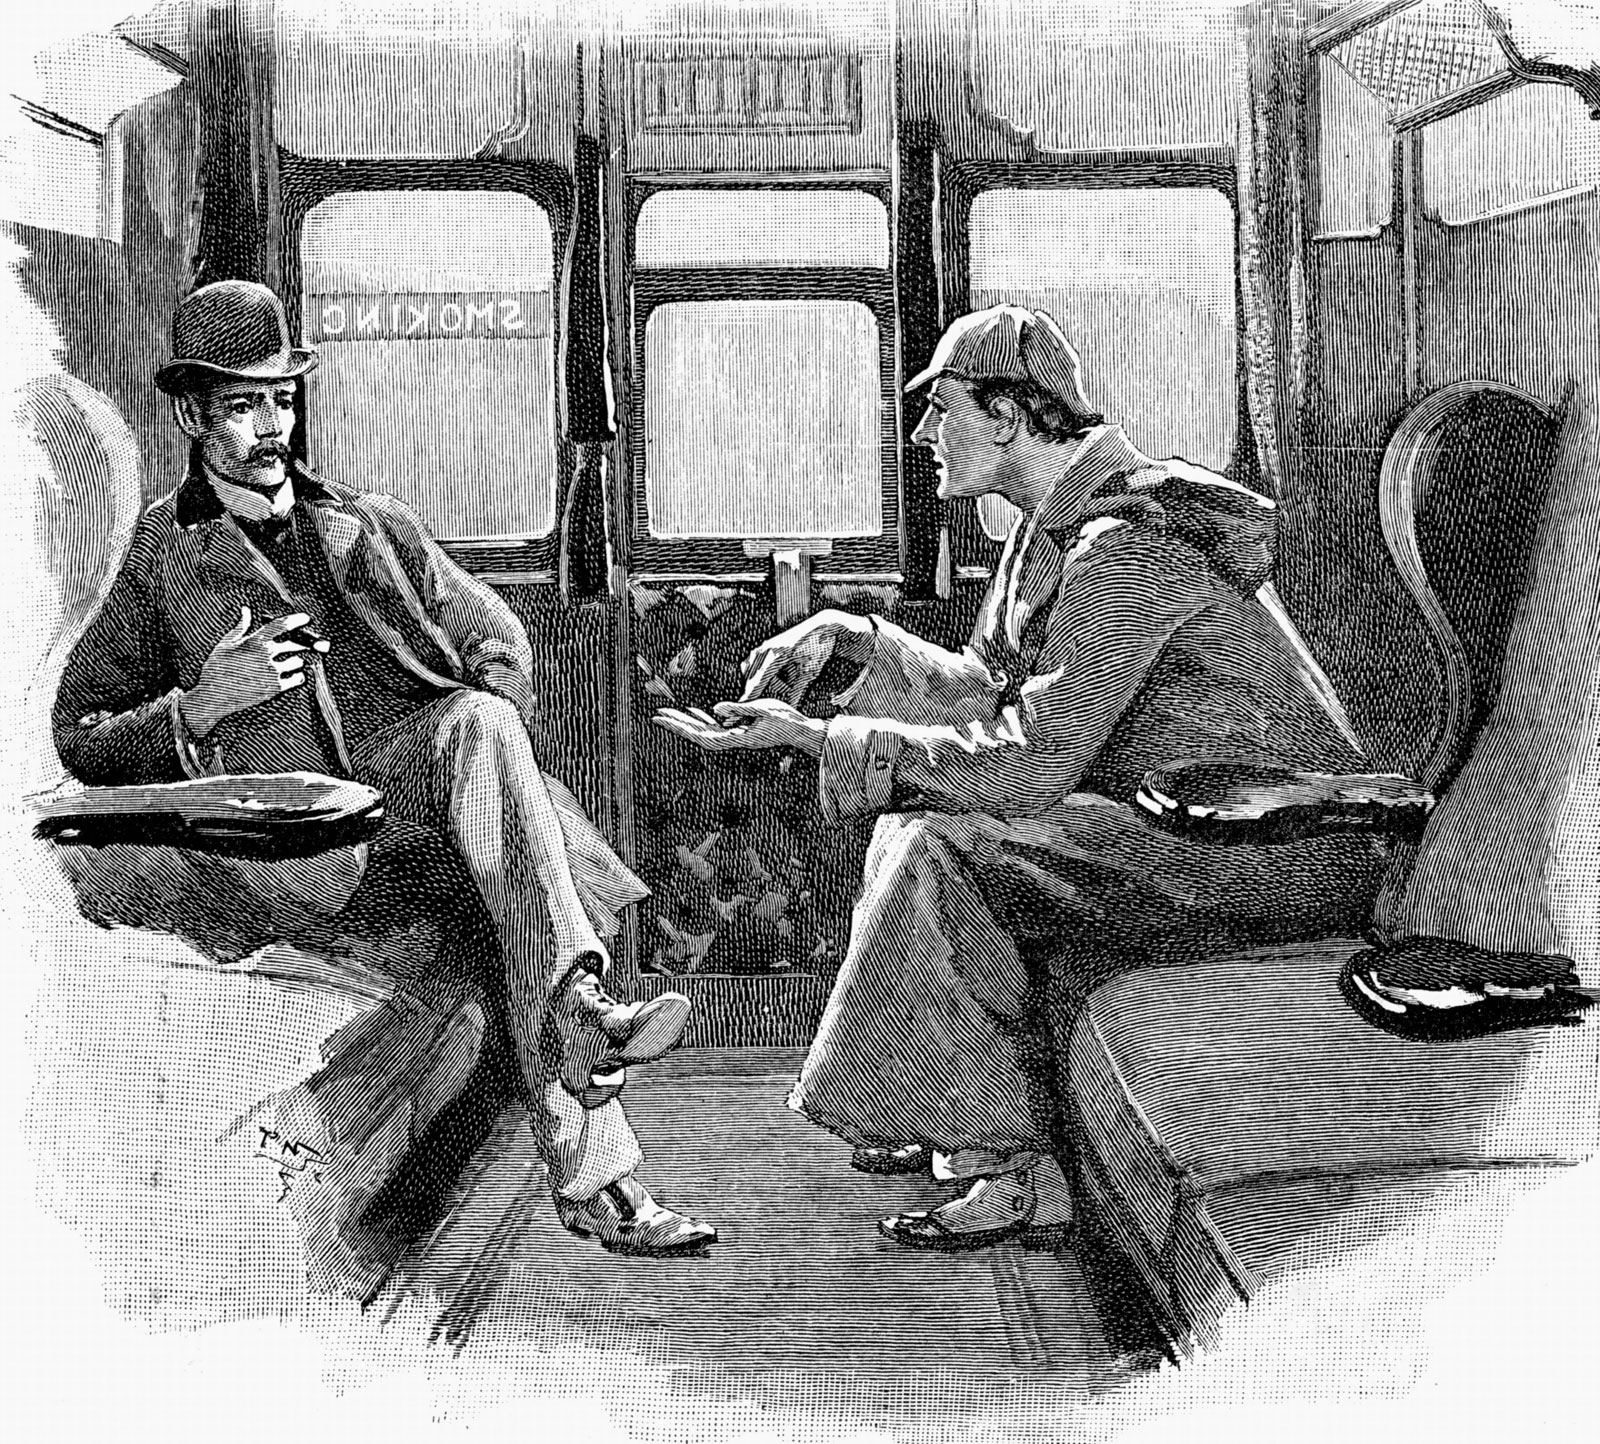 HOLMES AND A TRAIN BLUFF